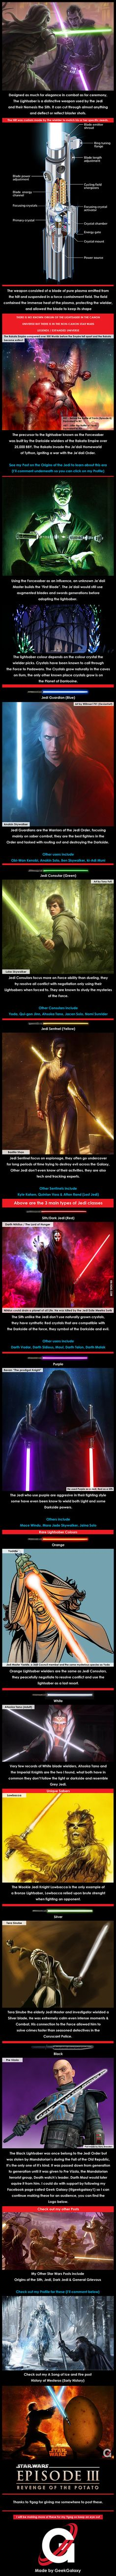 Star Wars: Lightsaber (Colours & Meanings) - 9GAG